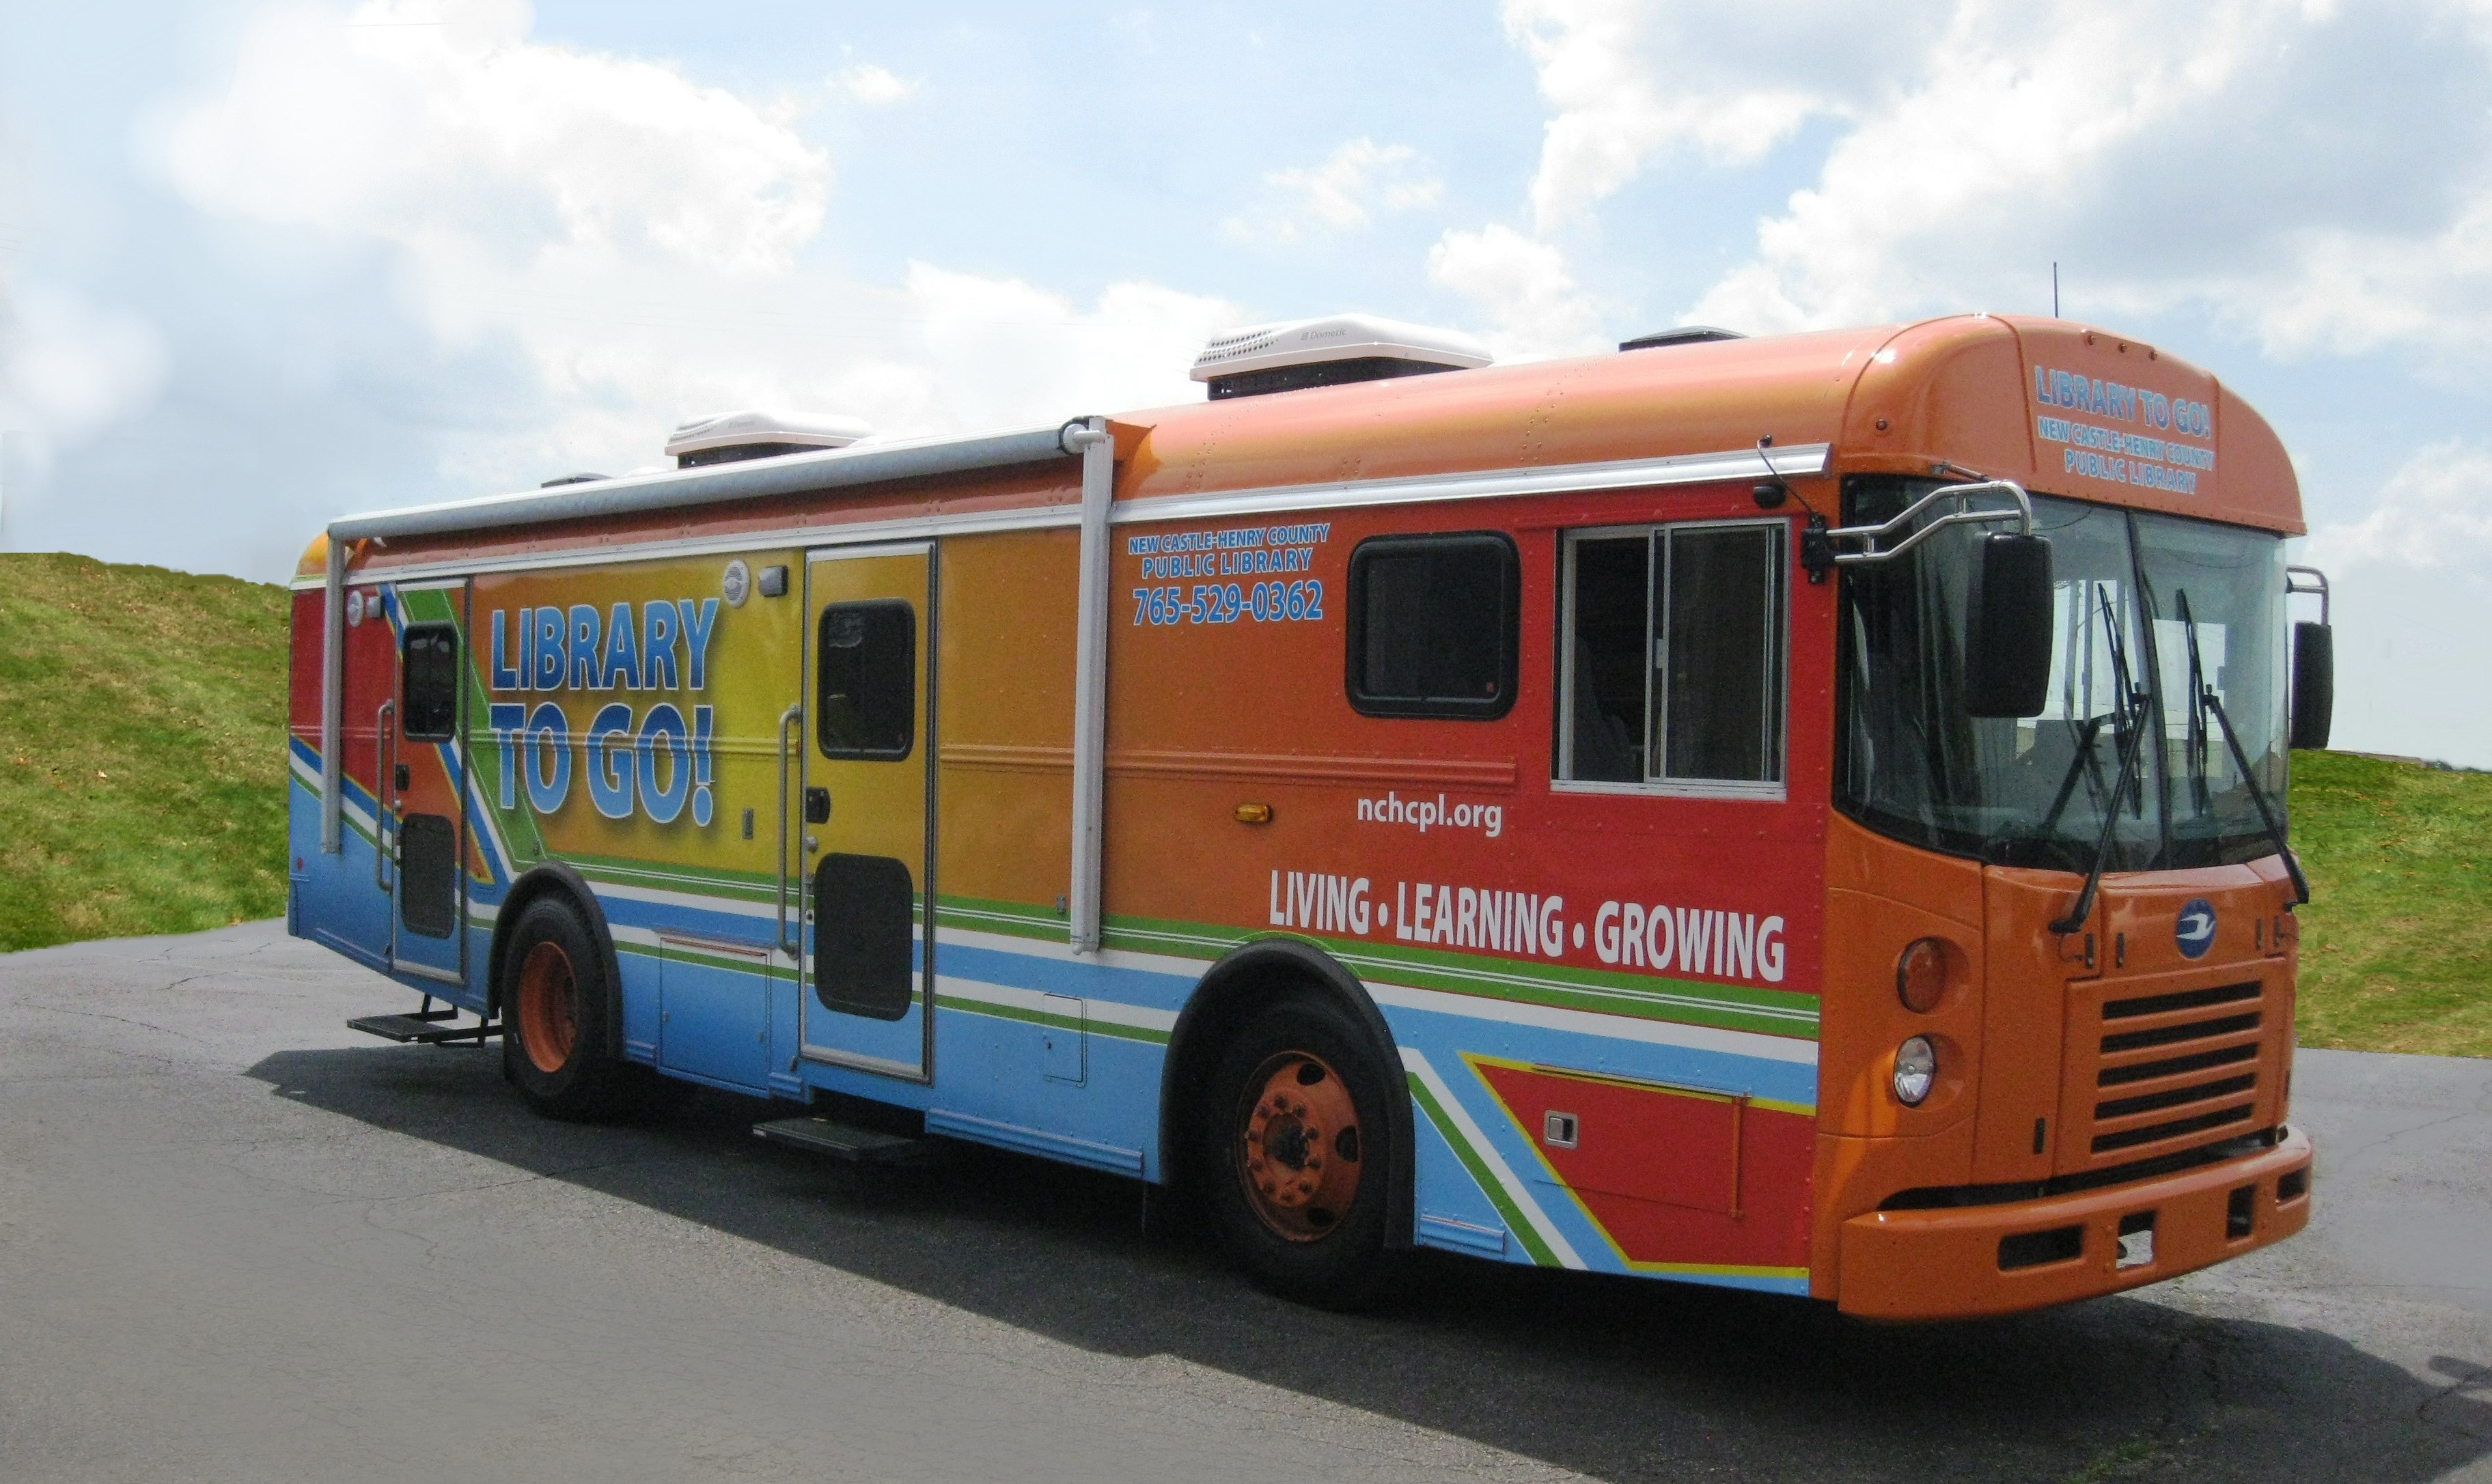 Picture of the Bookmobile